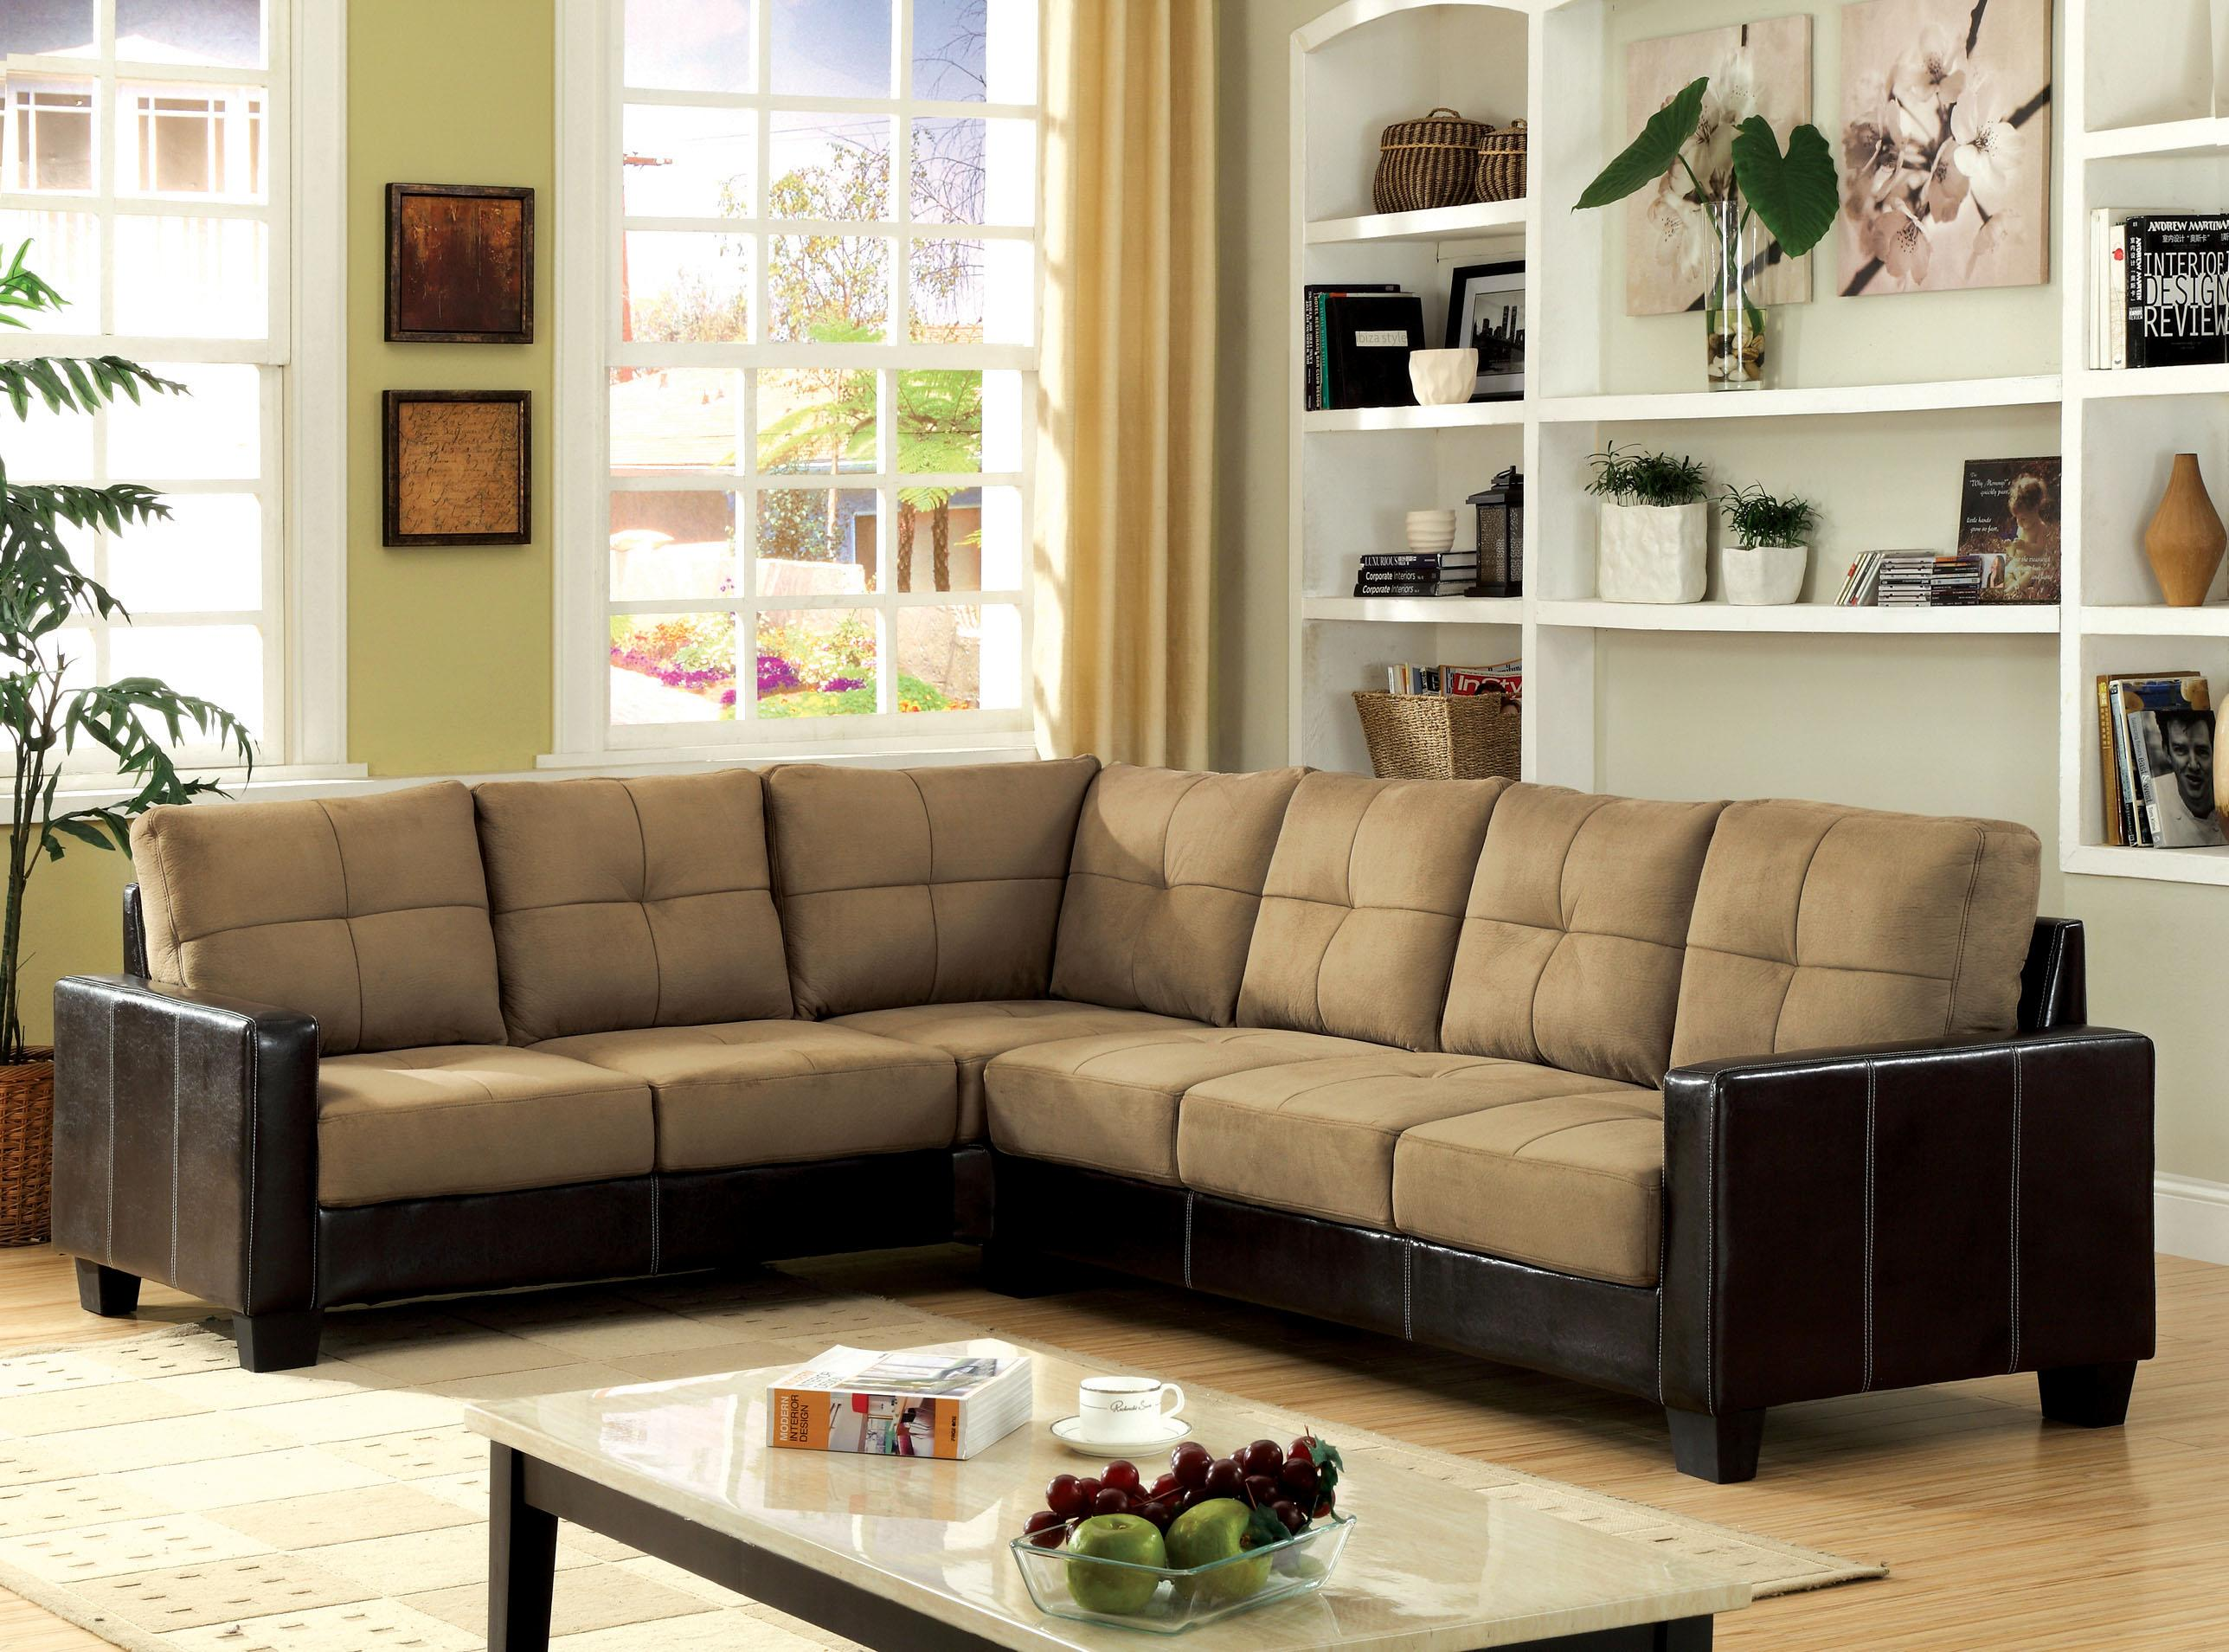 Furniture Of America Microfiber Upholstered Sectional Sofa In Taupe